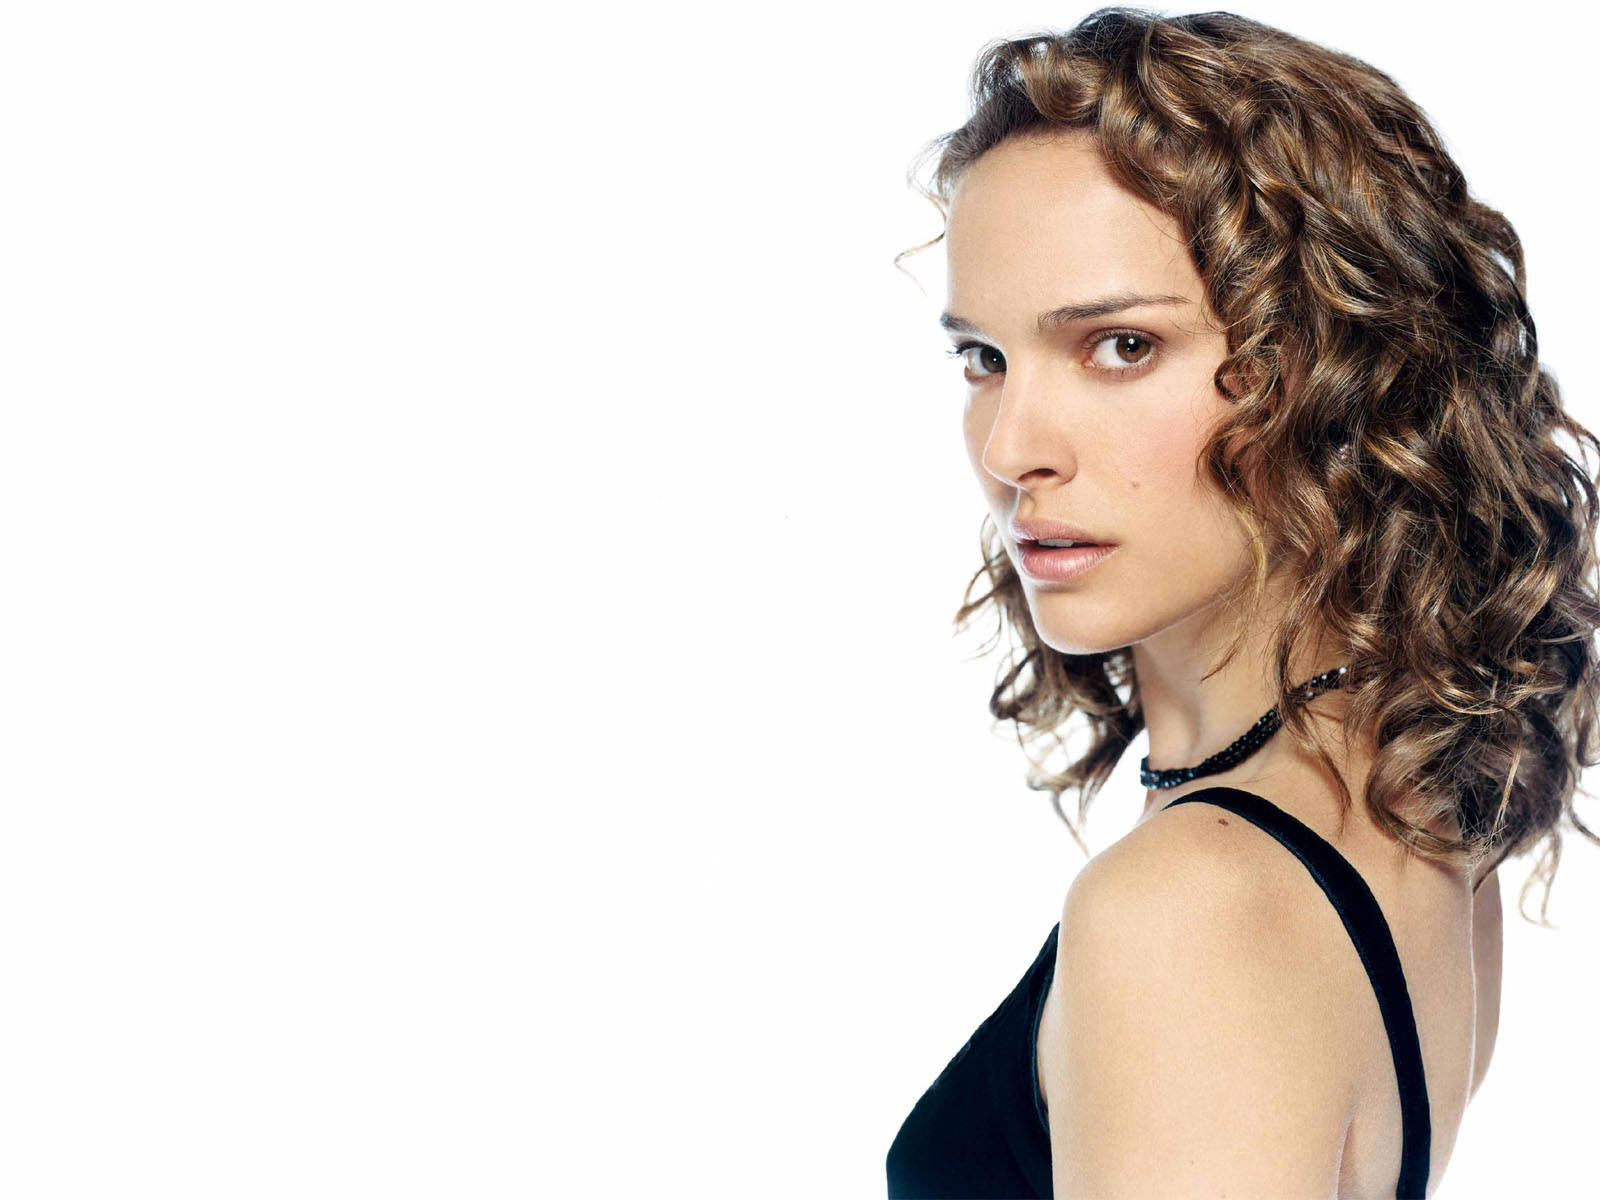 Wallpaper Natalie Portman portrait cheuveux long boucles